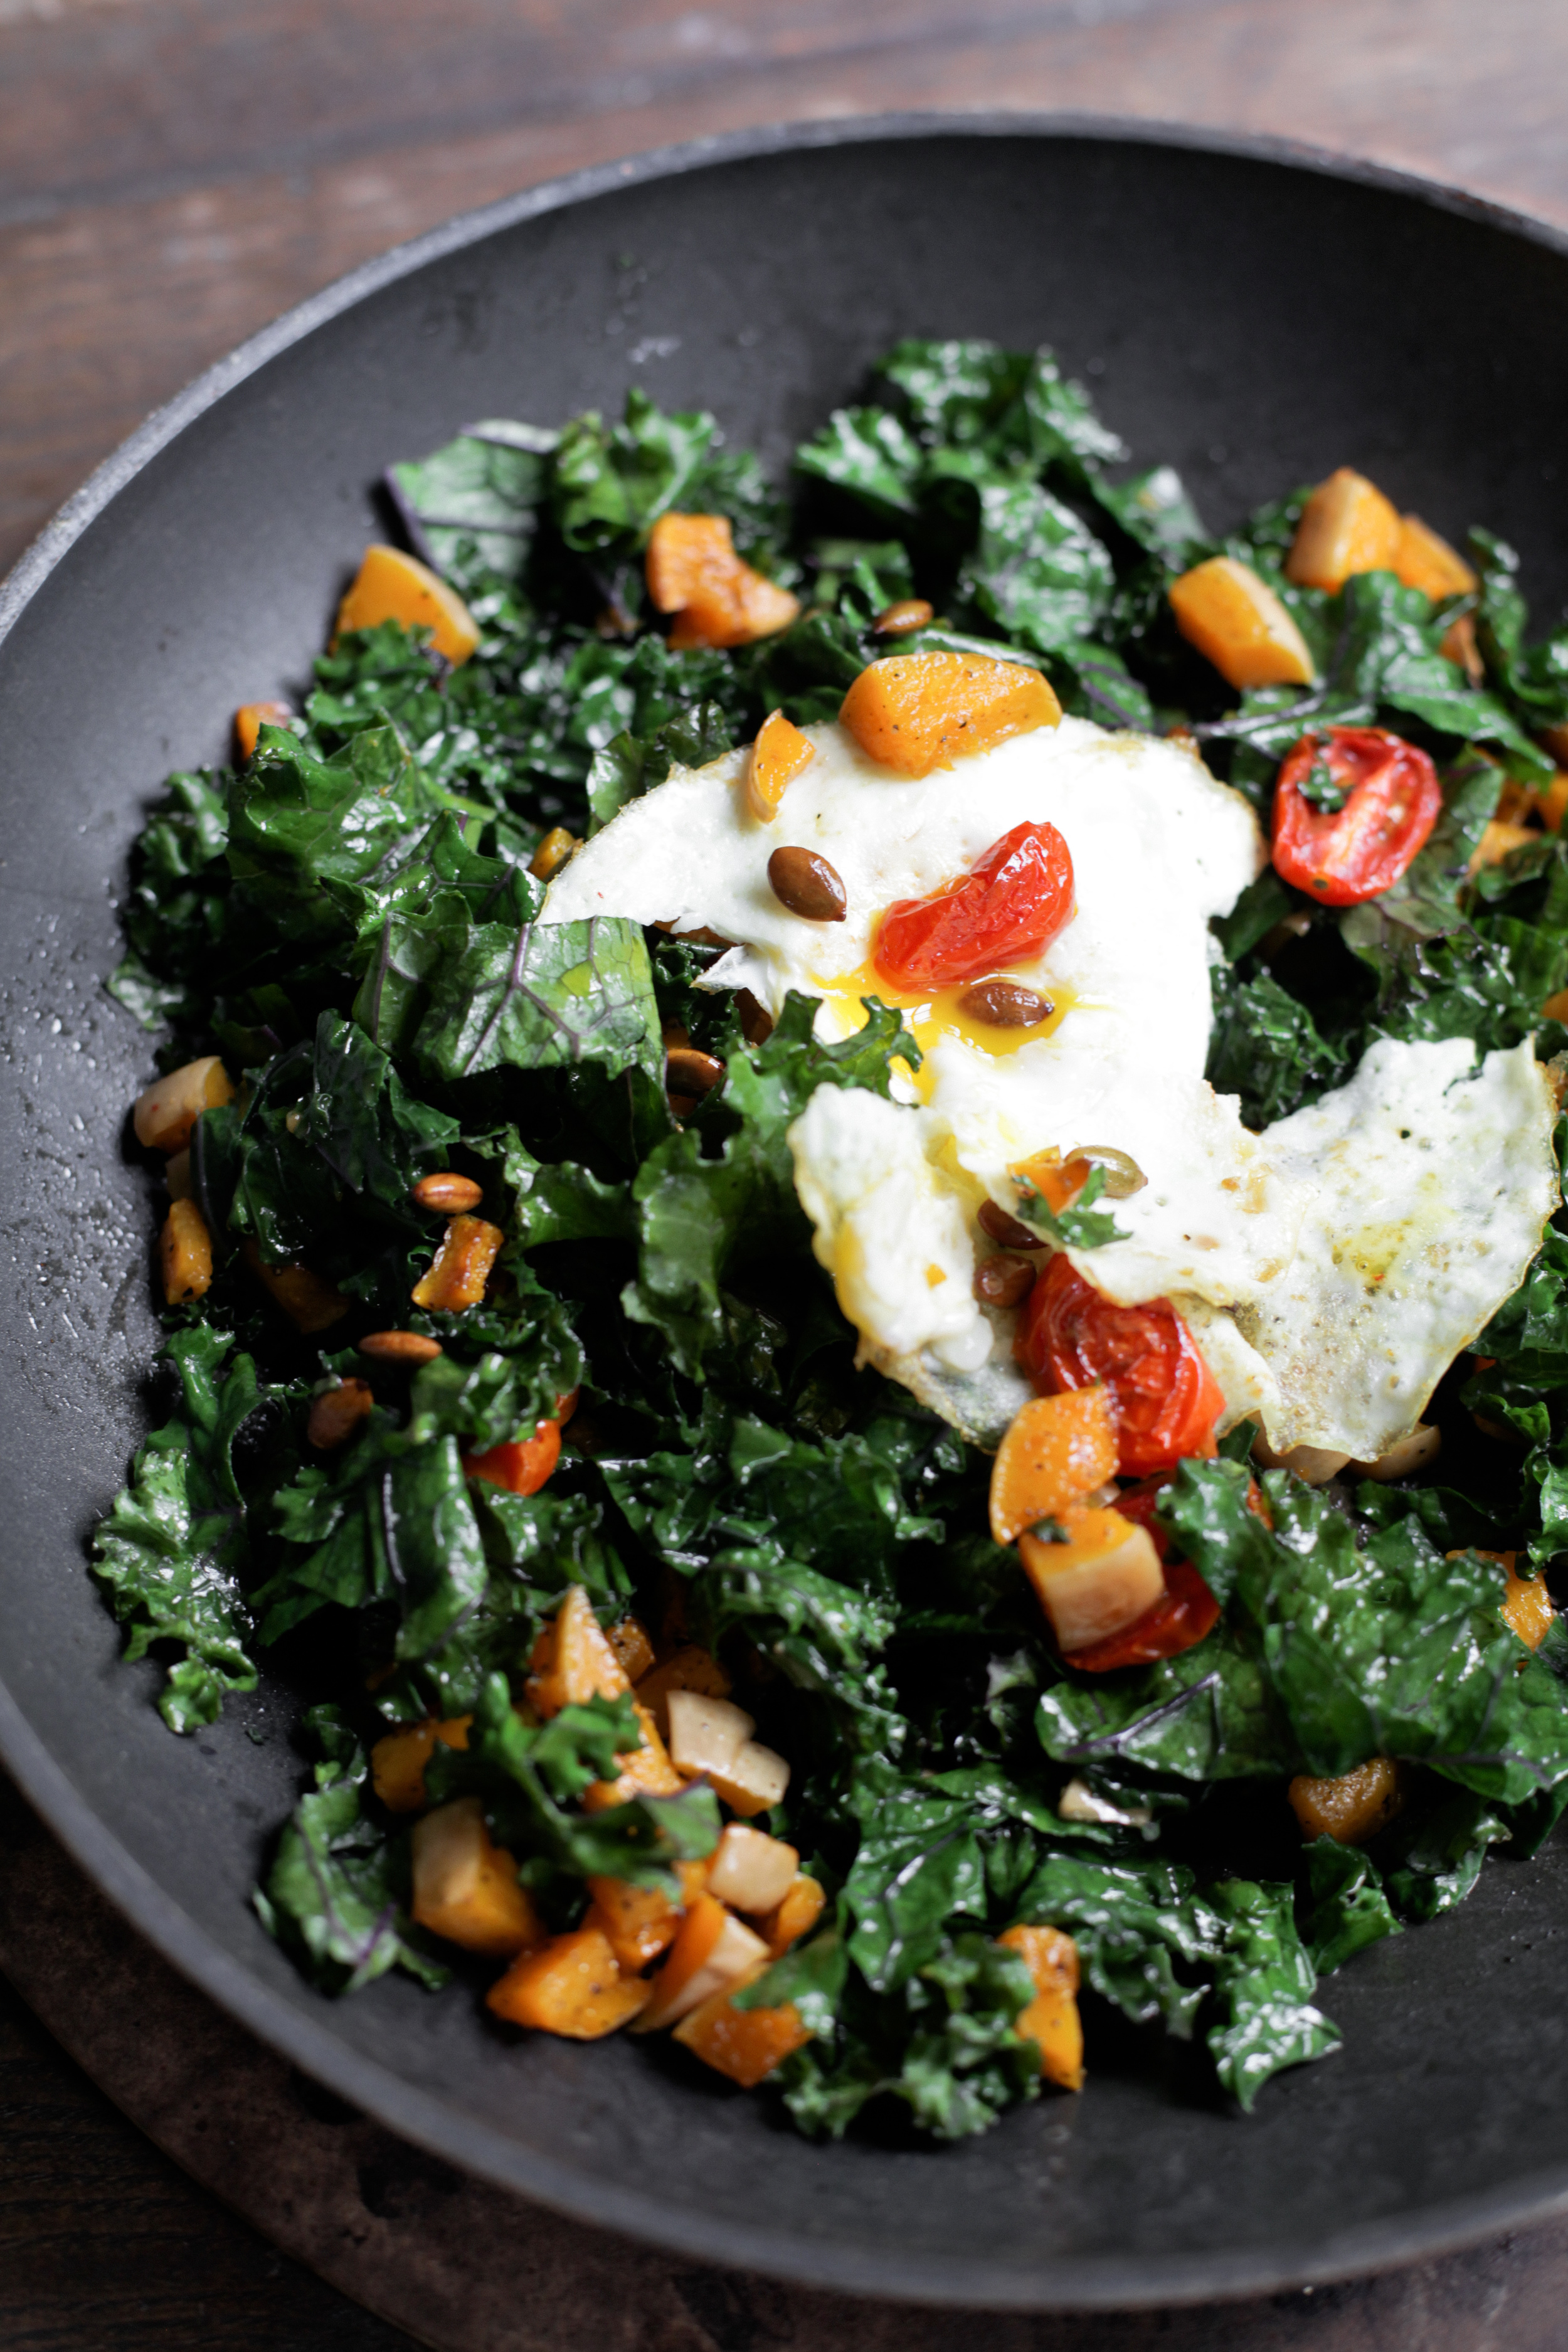 Warm Butternut Squash Kale Salad